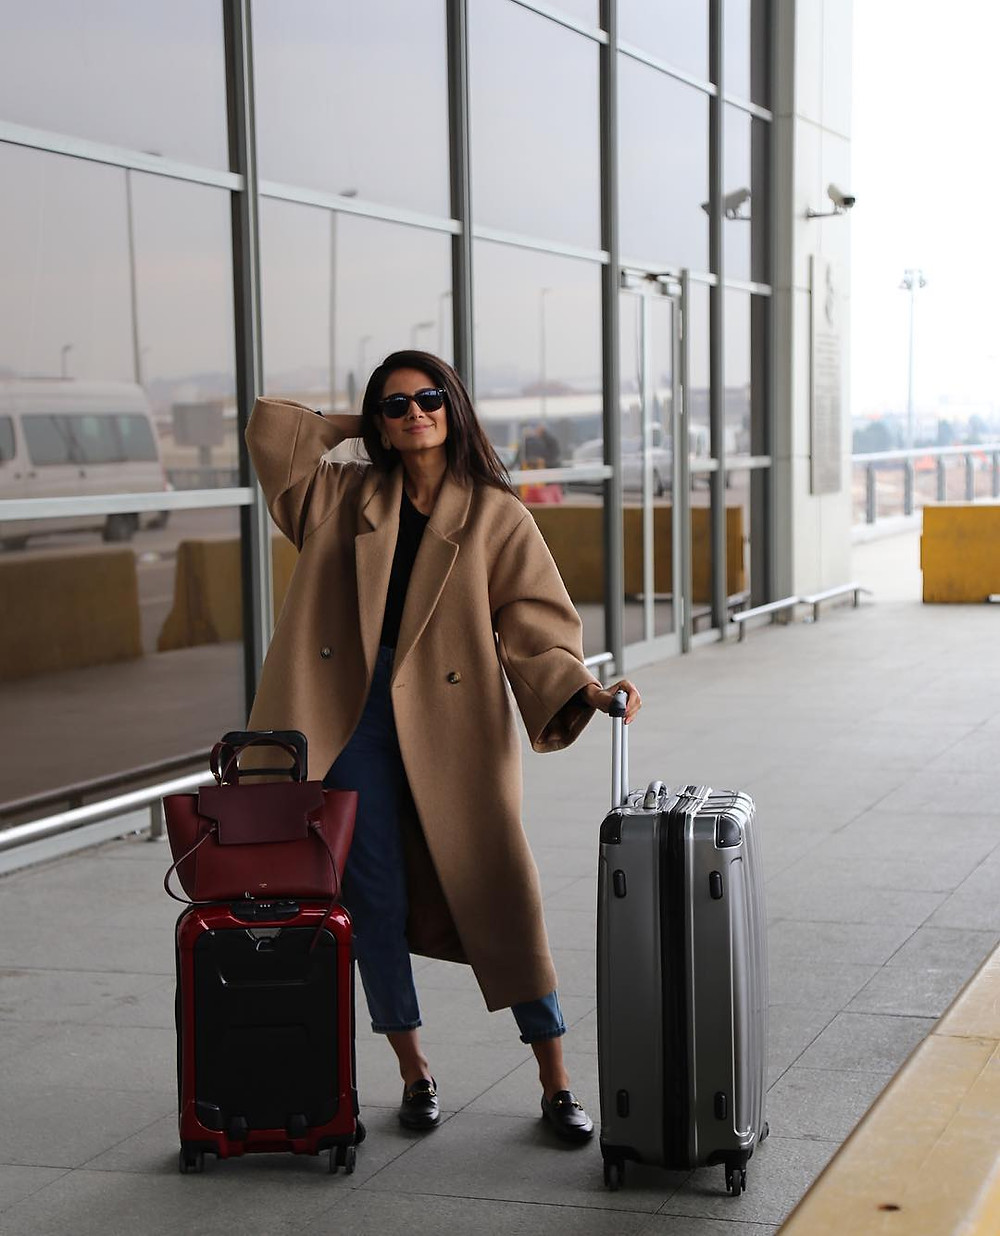 woman wearing camel coat at airport with luggage